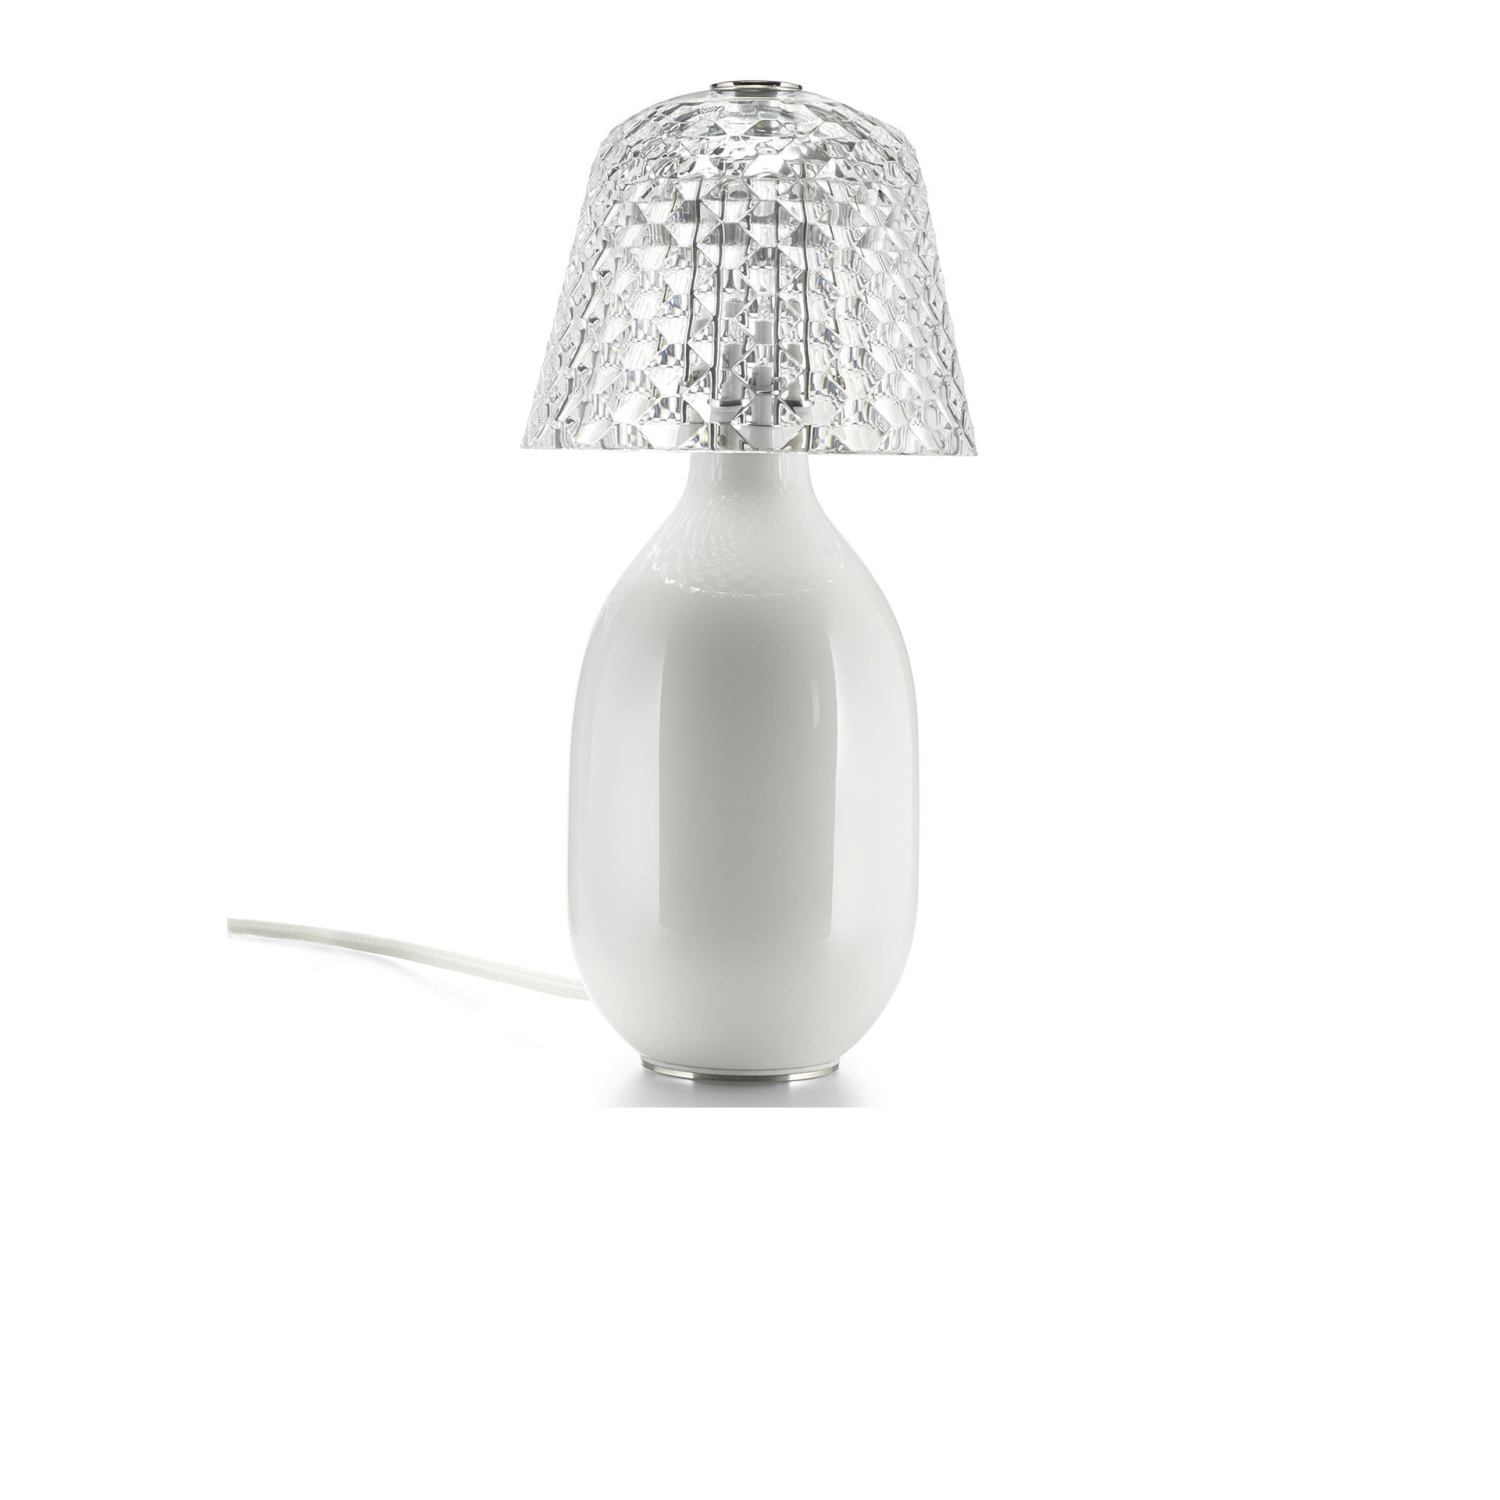 lamp white Baccarat candy light 2802199